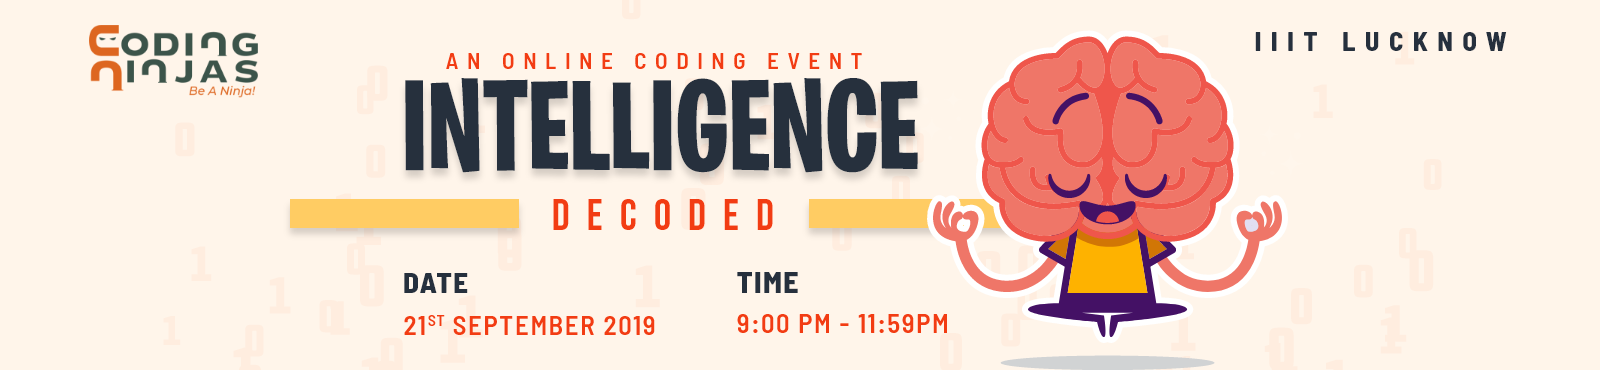 Intelligence Decoded - An Online Coding Event